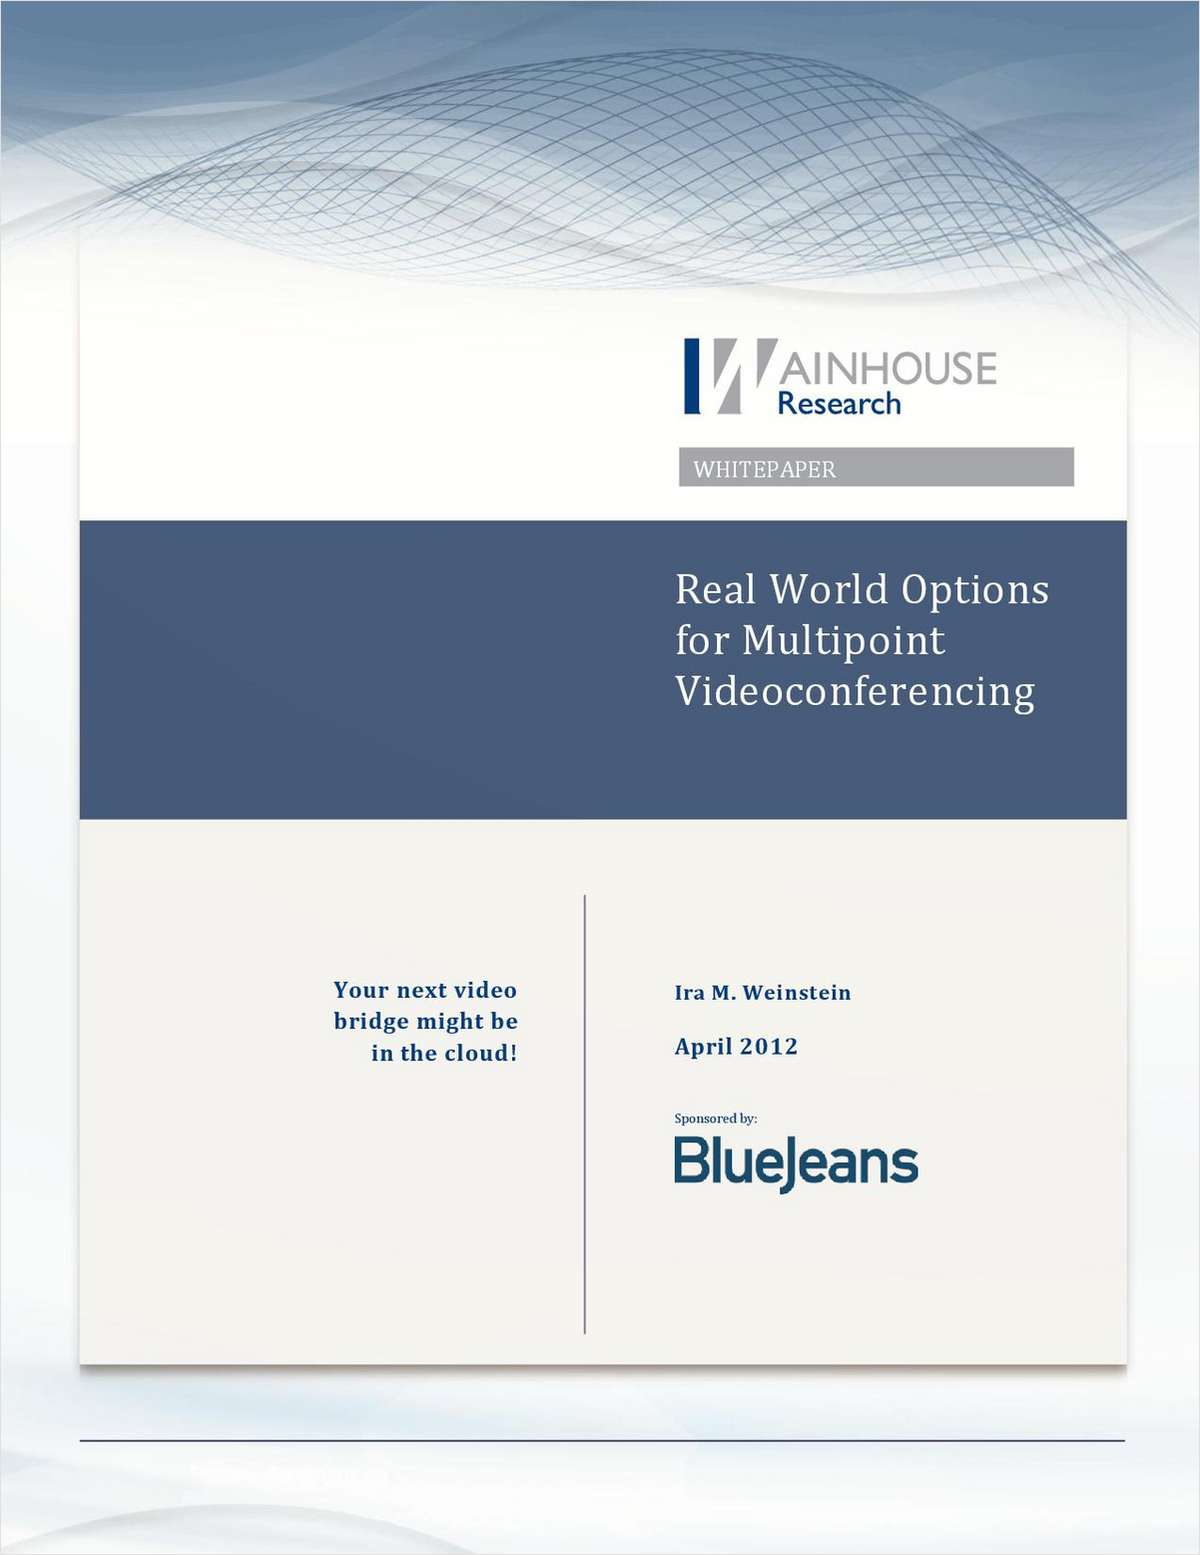 Real-World Options for Multipoint Videoconferencing